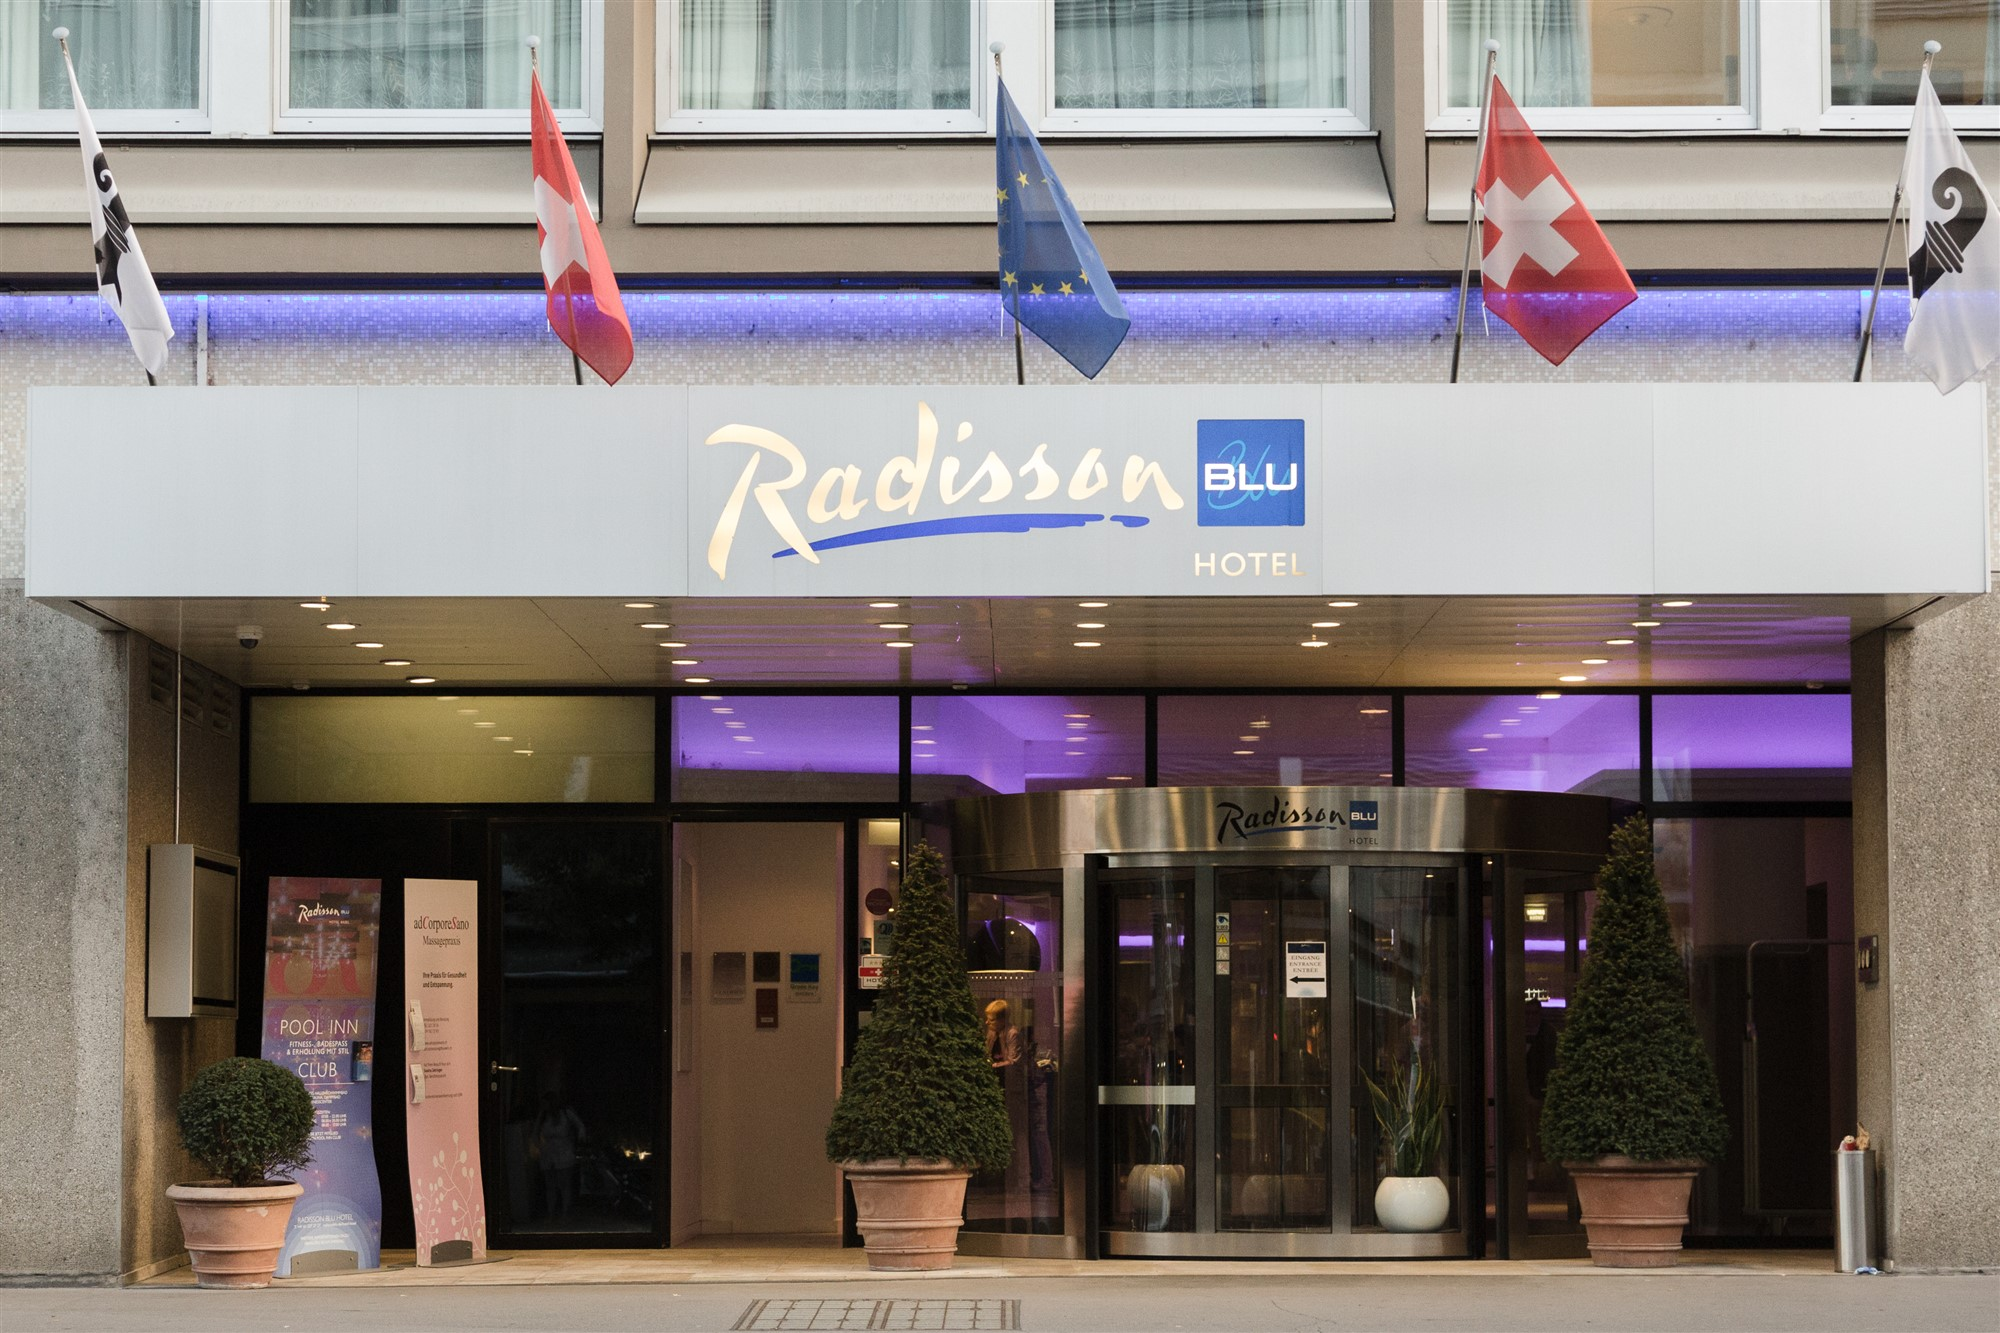 Hotel Radisson Blu in Basel